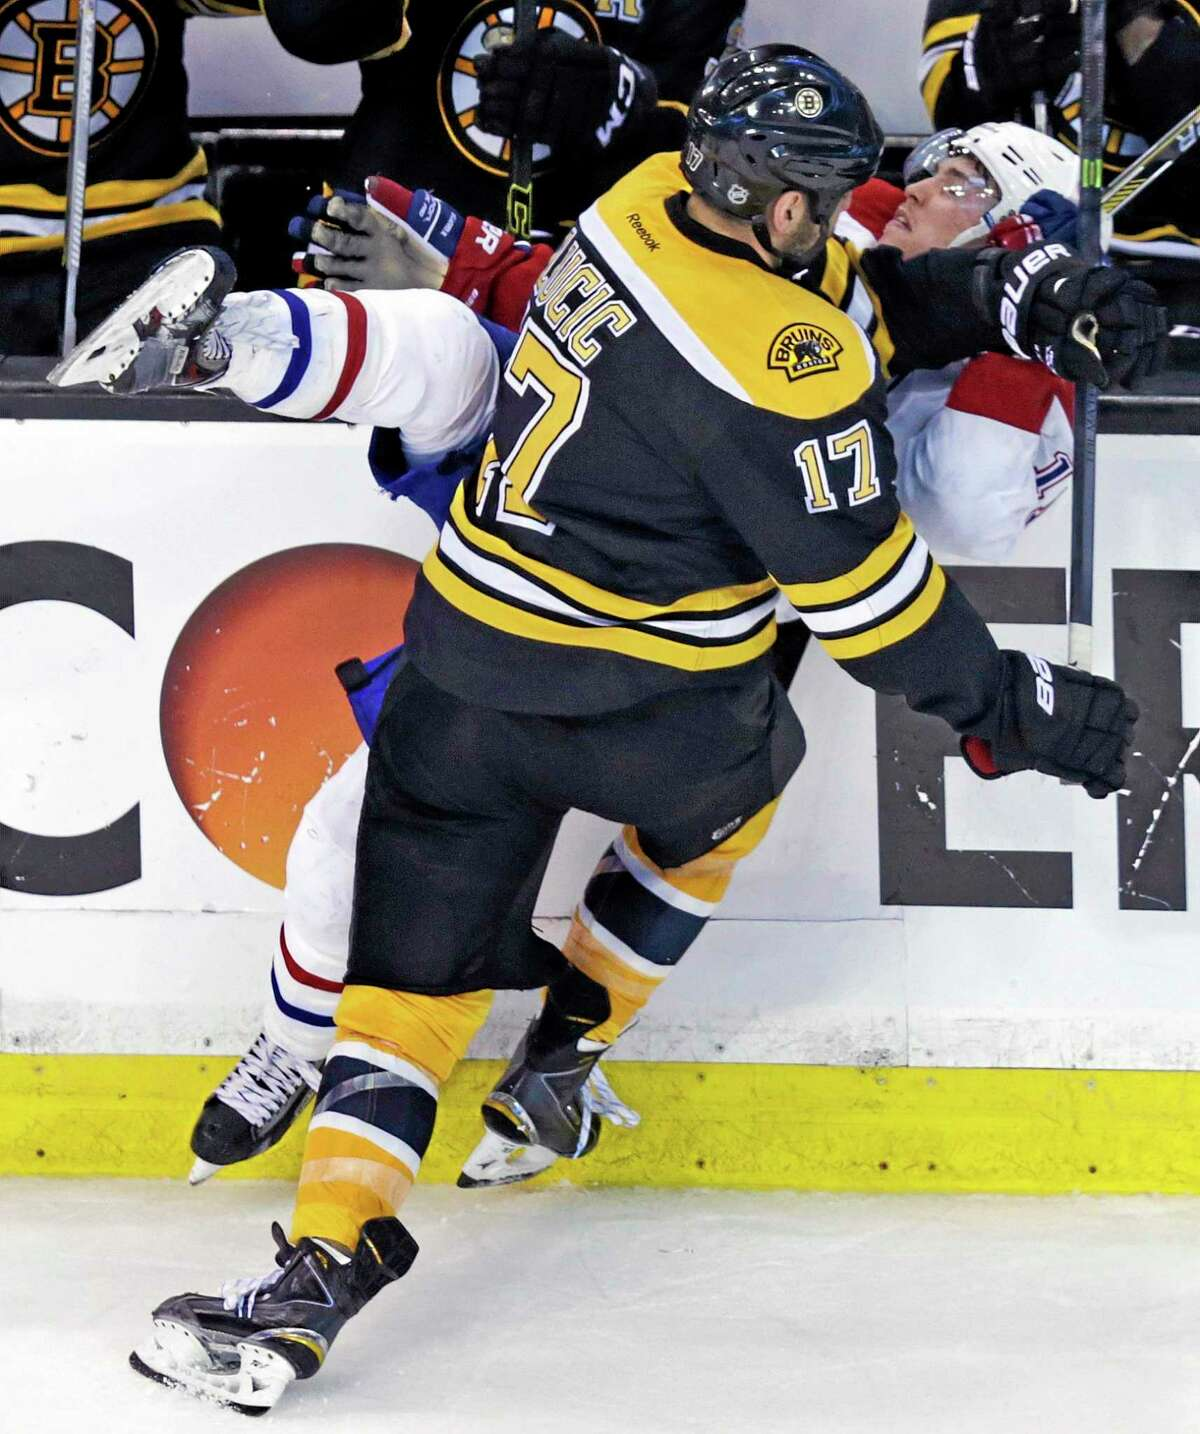 Bruins left wing Milan Lucic (17) drives Montreal Canadiens right wing Brendan Gallagher (11) into the board during the third period of Game 2 in the second-round Stanley Cup series on Saturday in Boston.